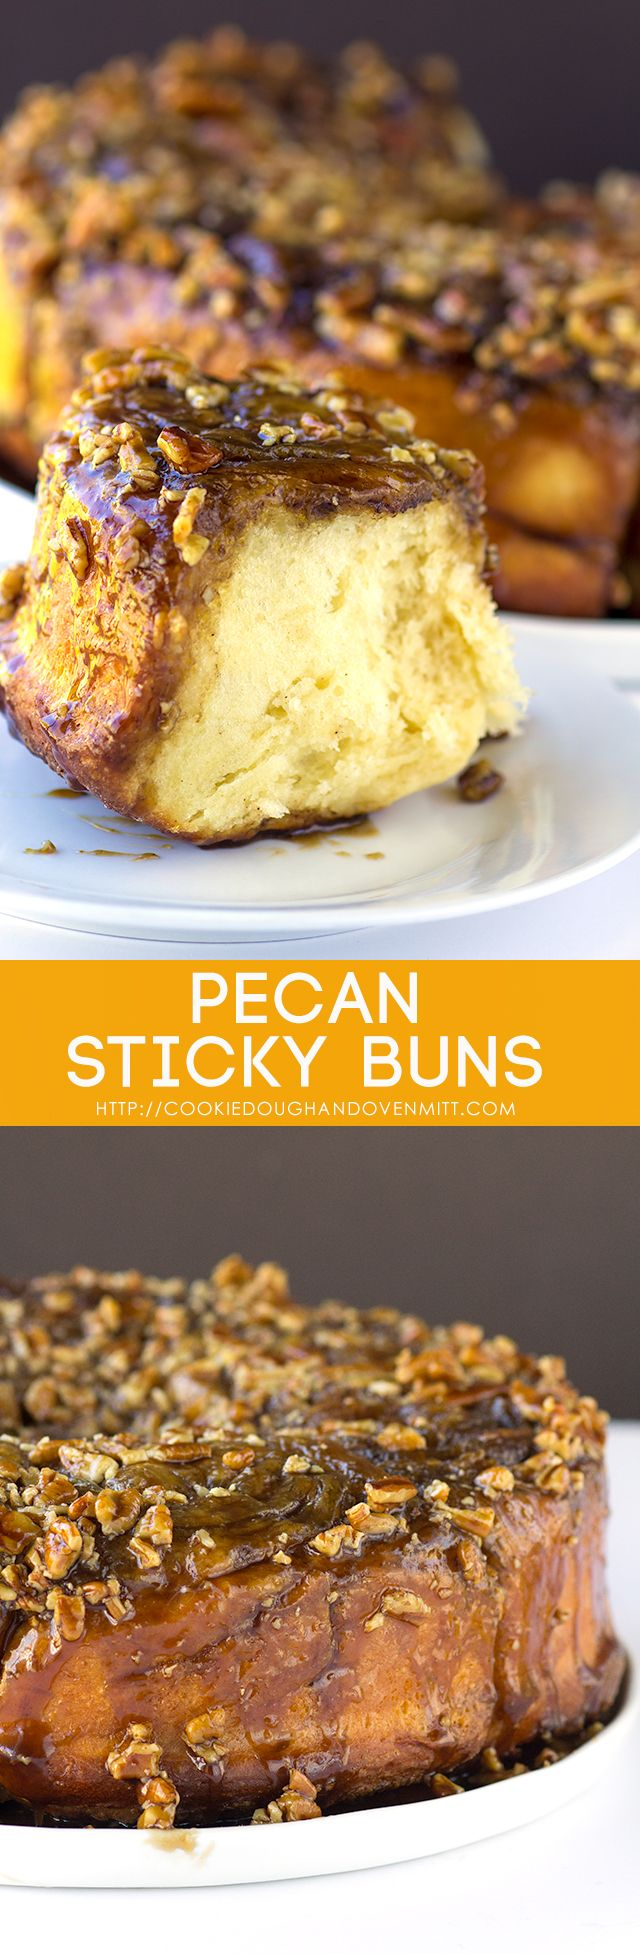 Buttery pecan sticky buns loaded with a cinnamon sugar filling and topped with a caramel sauce and pecans, does this sound like a breakfast that you need?